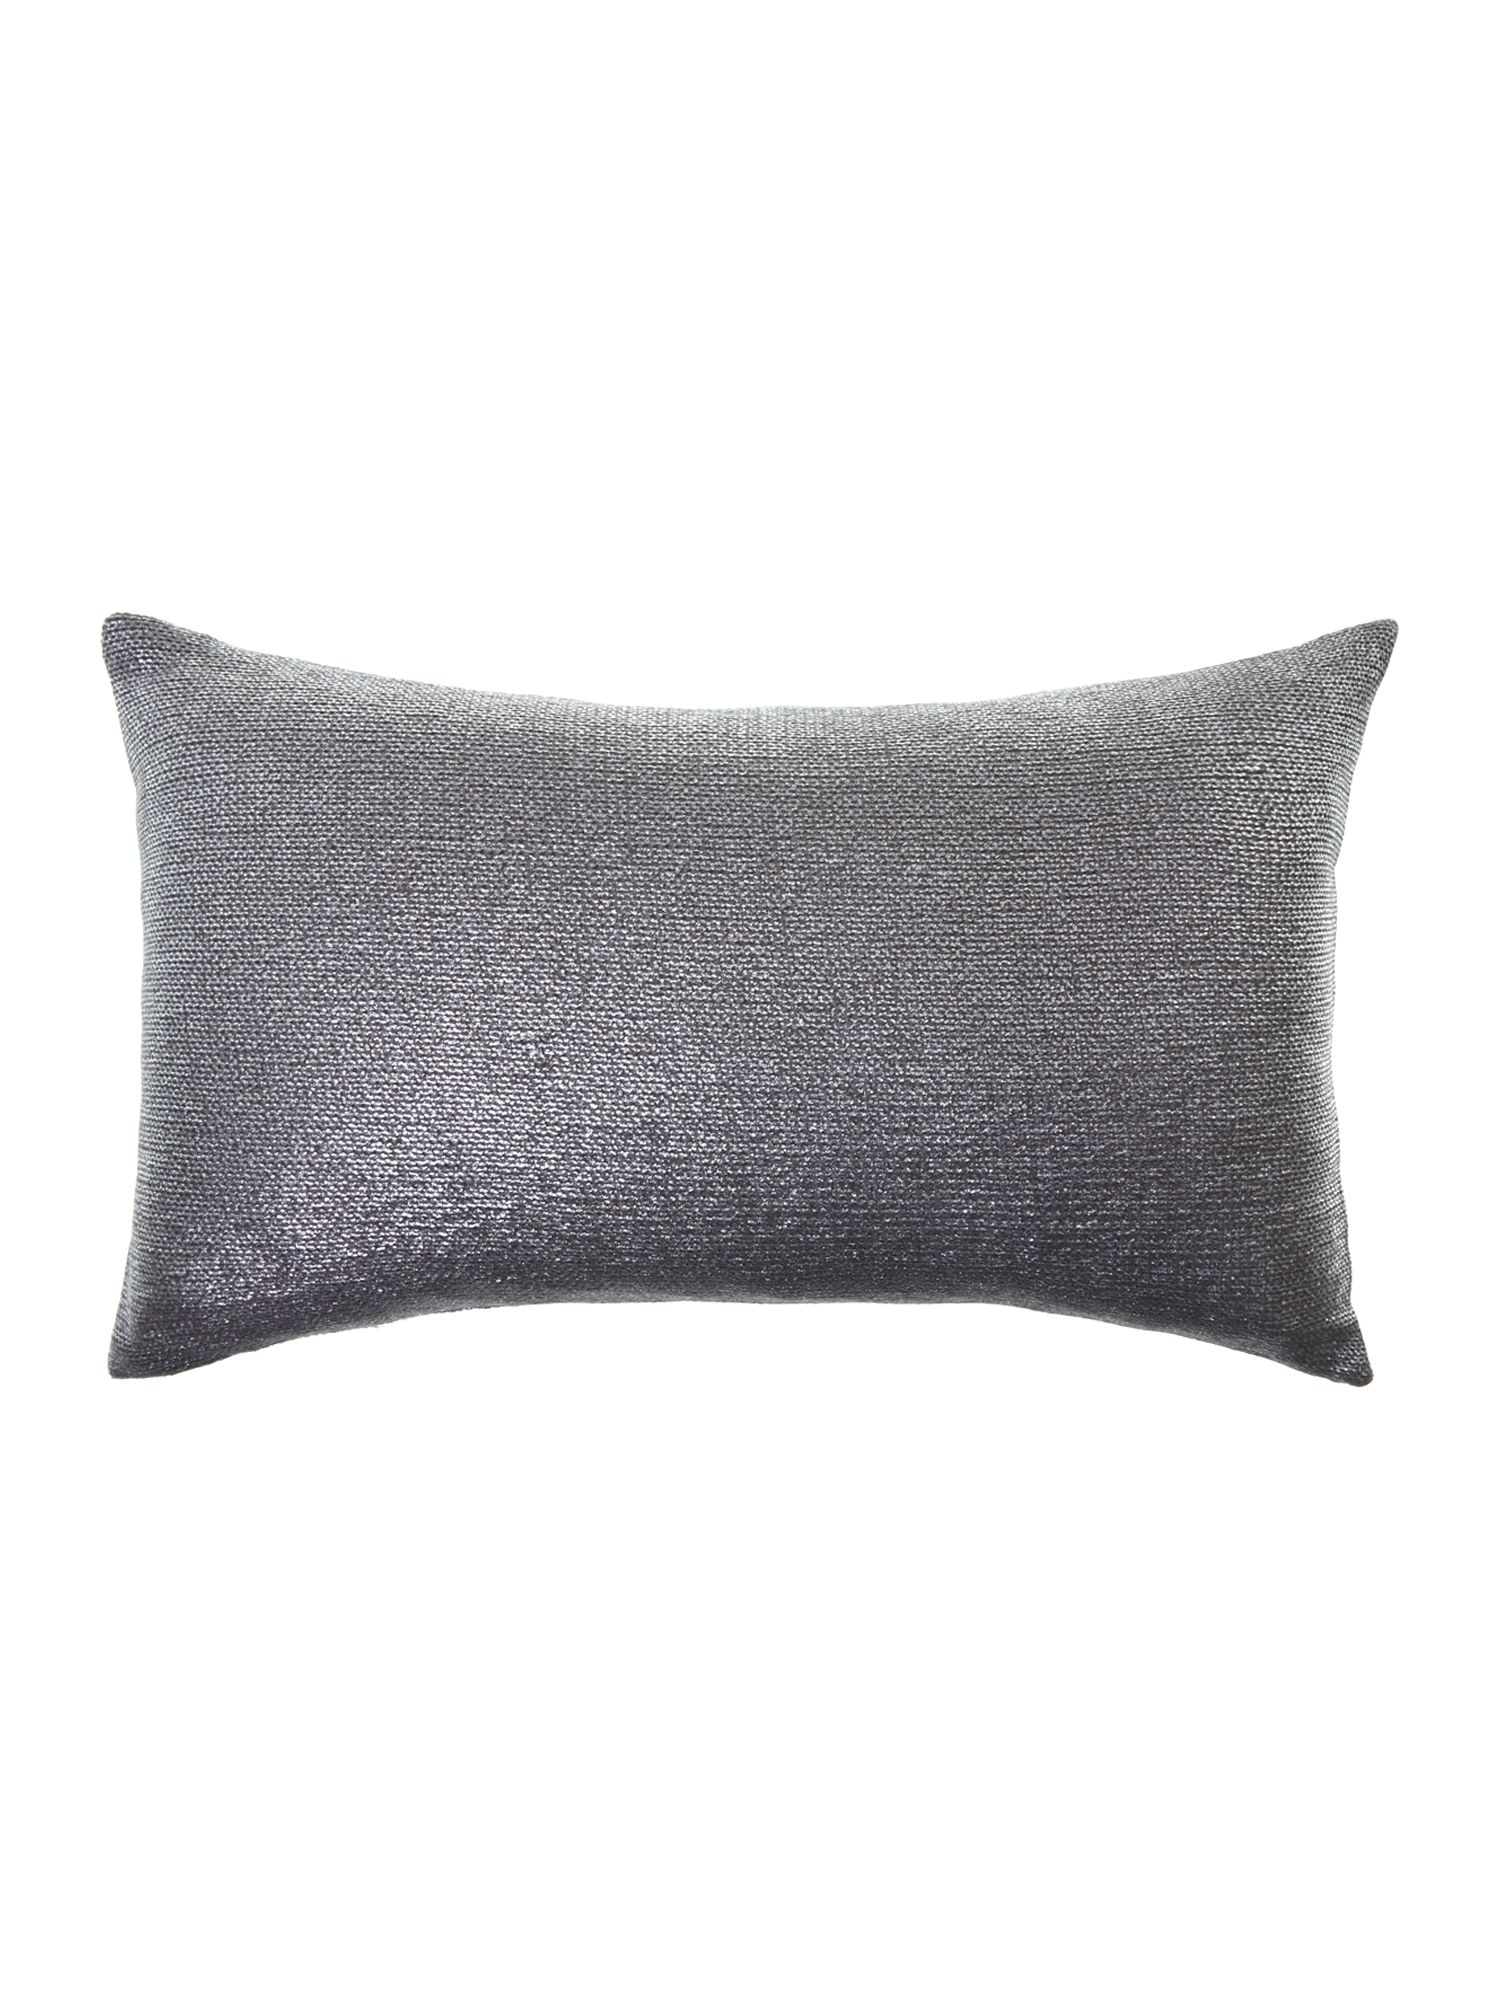 Silver foil knitted cushion